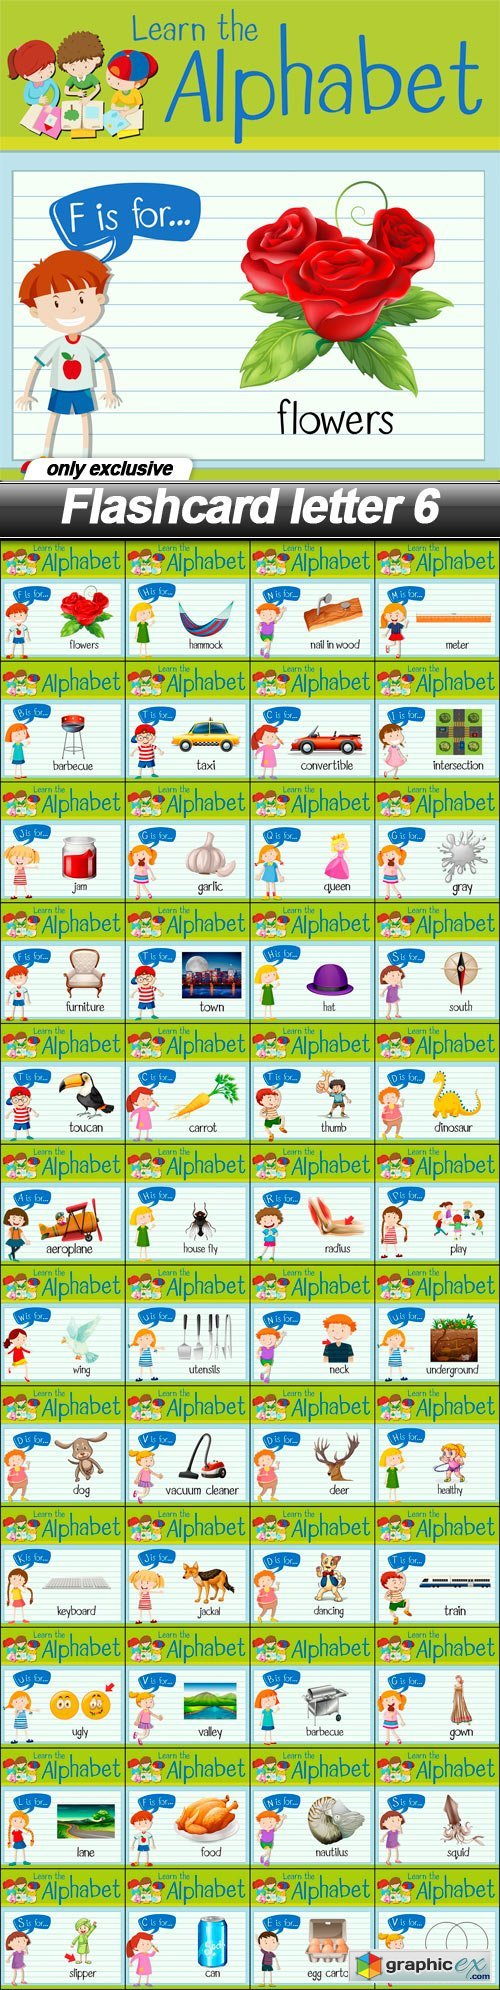 Flashcard letter 6 - 48 EPS